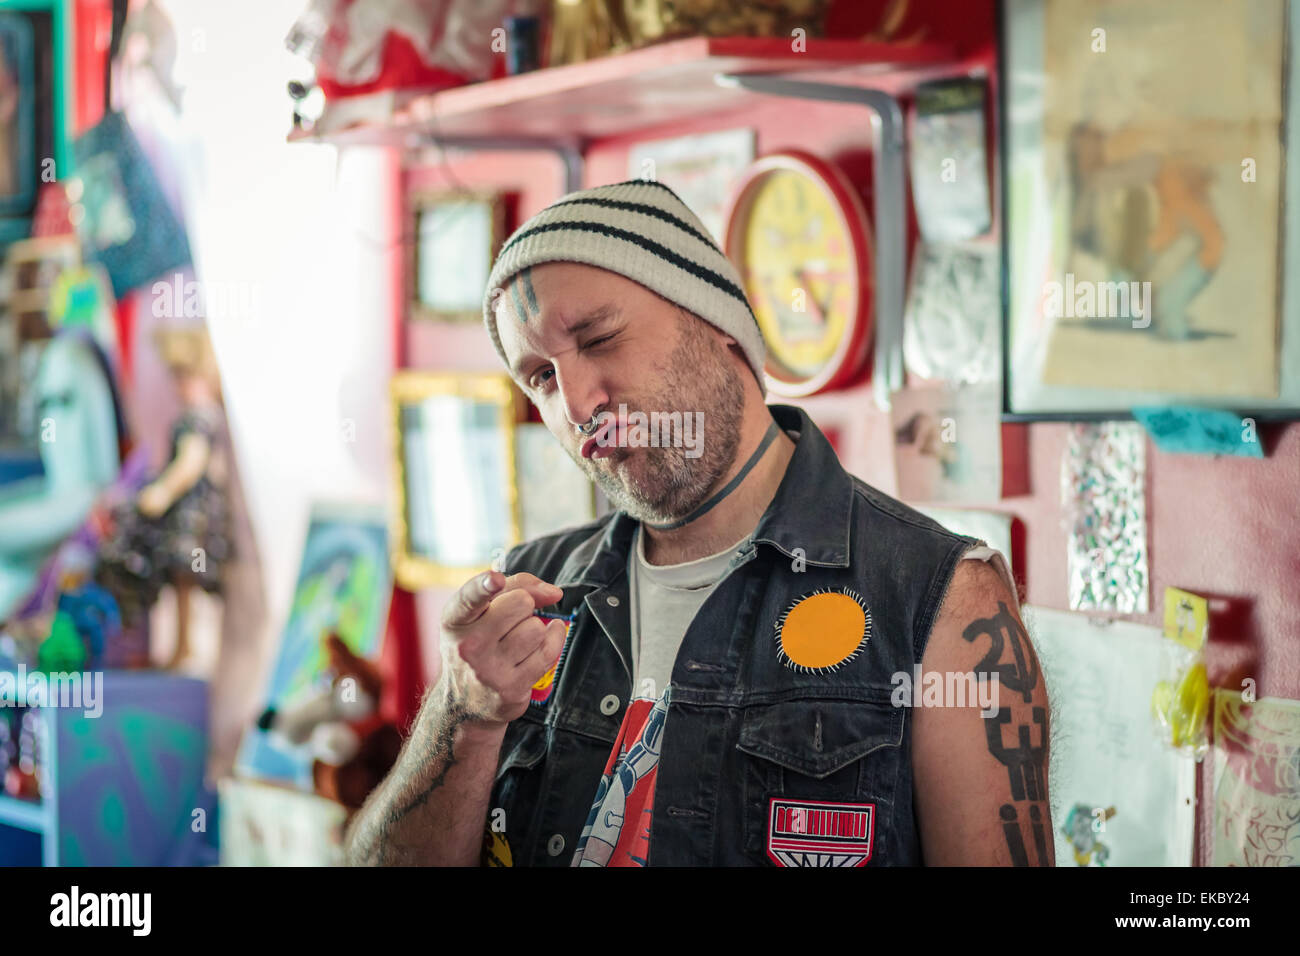 Portrait d'homme punk shop keeper en clignant vintage toy shop Photo Stock